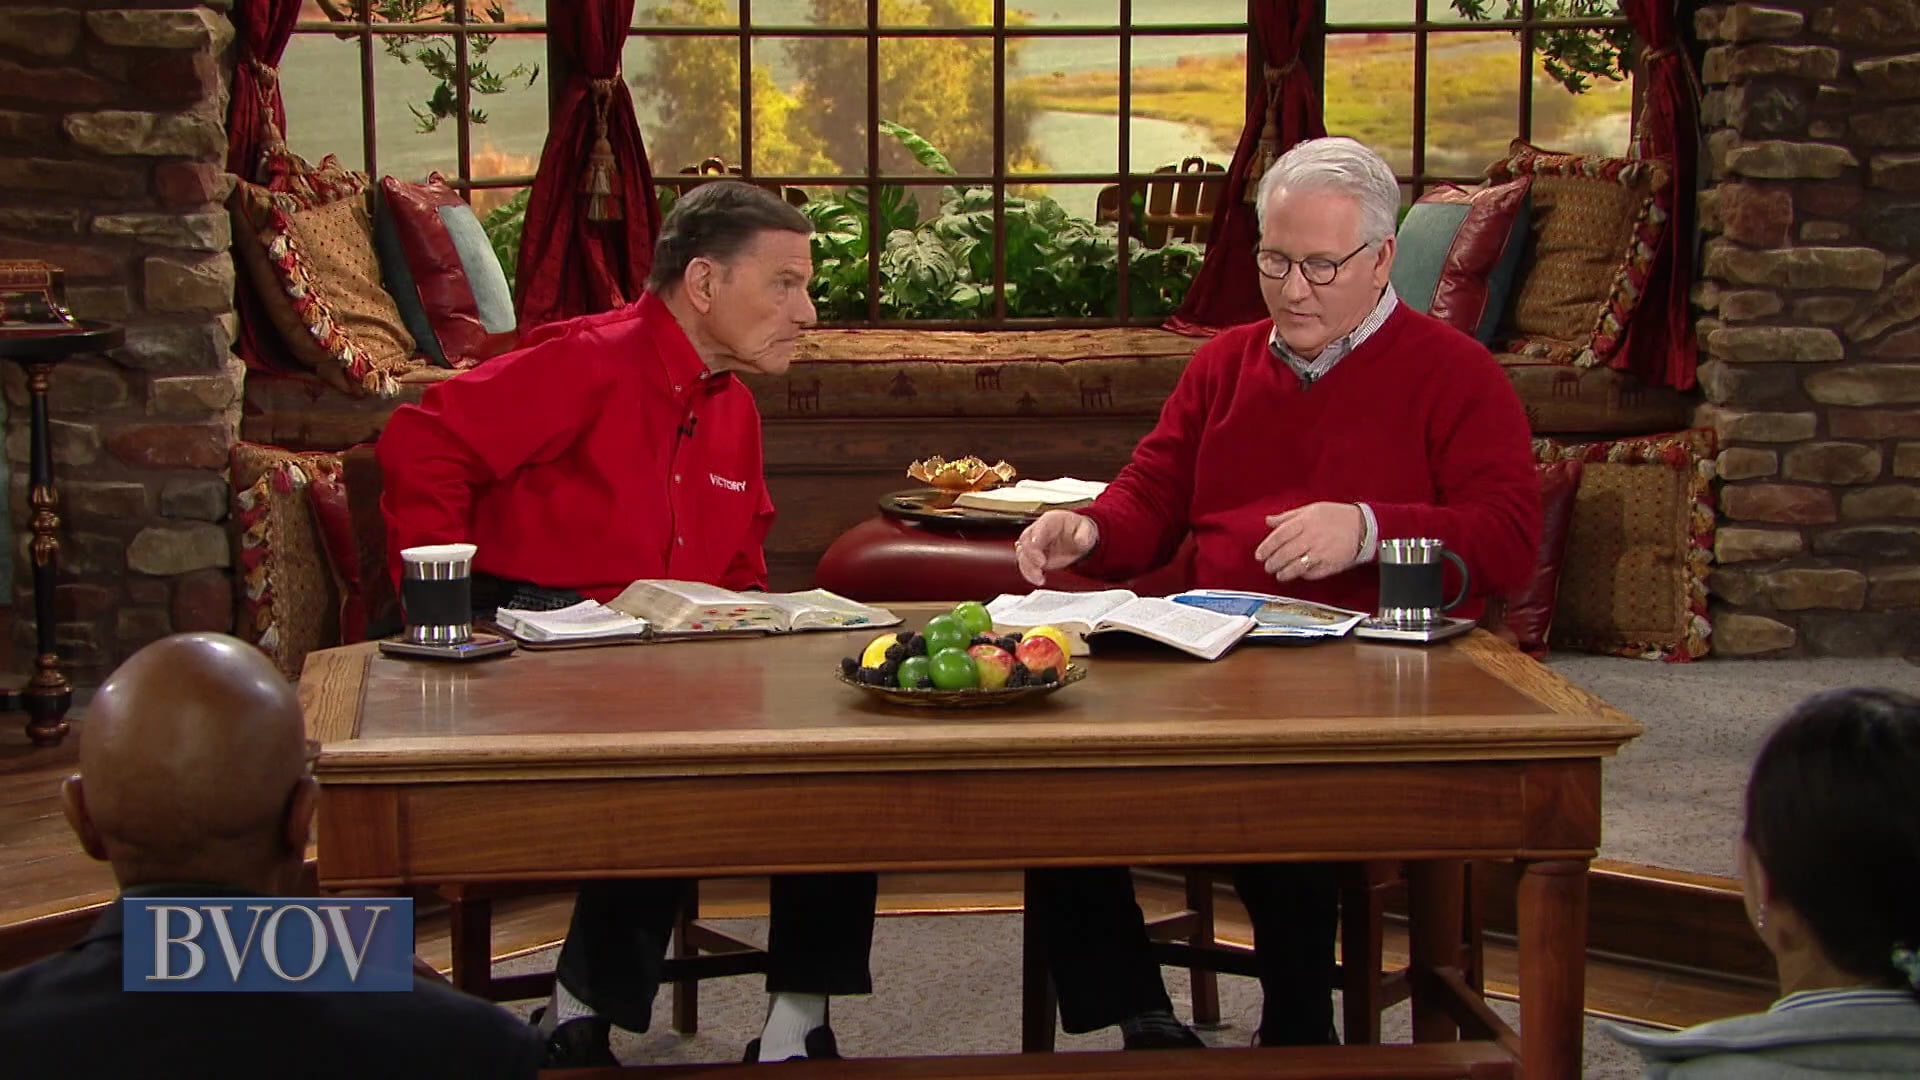 Join Kenneth Copeland and Professor Greg Stephens on Believer's Voice of Victory as they explain how everything Jesus said is a covenant. Learn why, when you sow into a ministry, you share in its anointing, and you can expect to reap the same harvest. That's the power of covenant partnership!